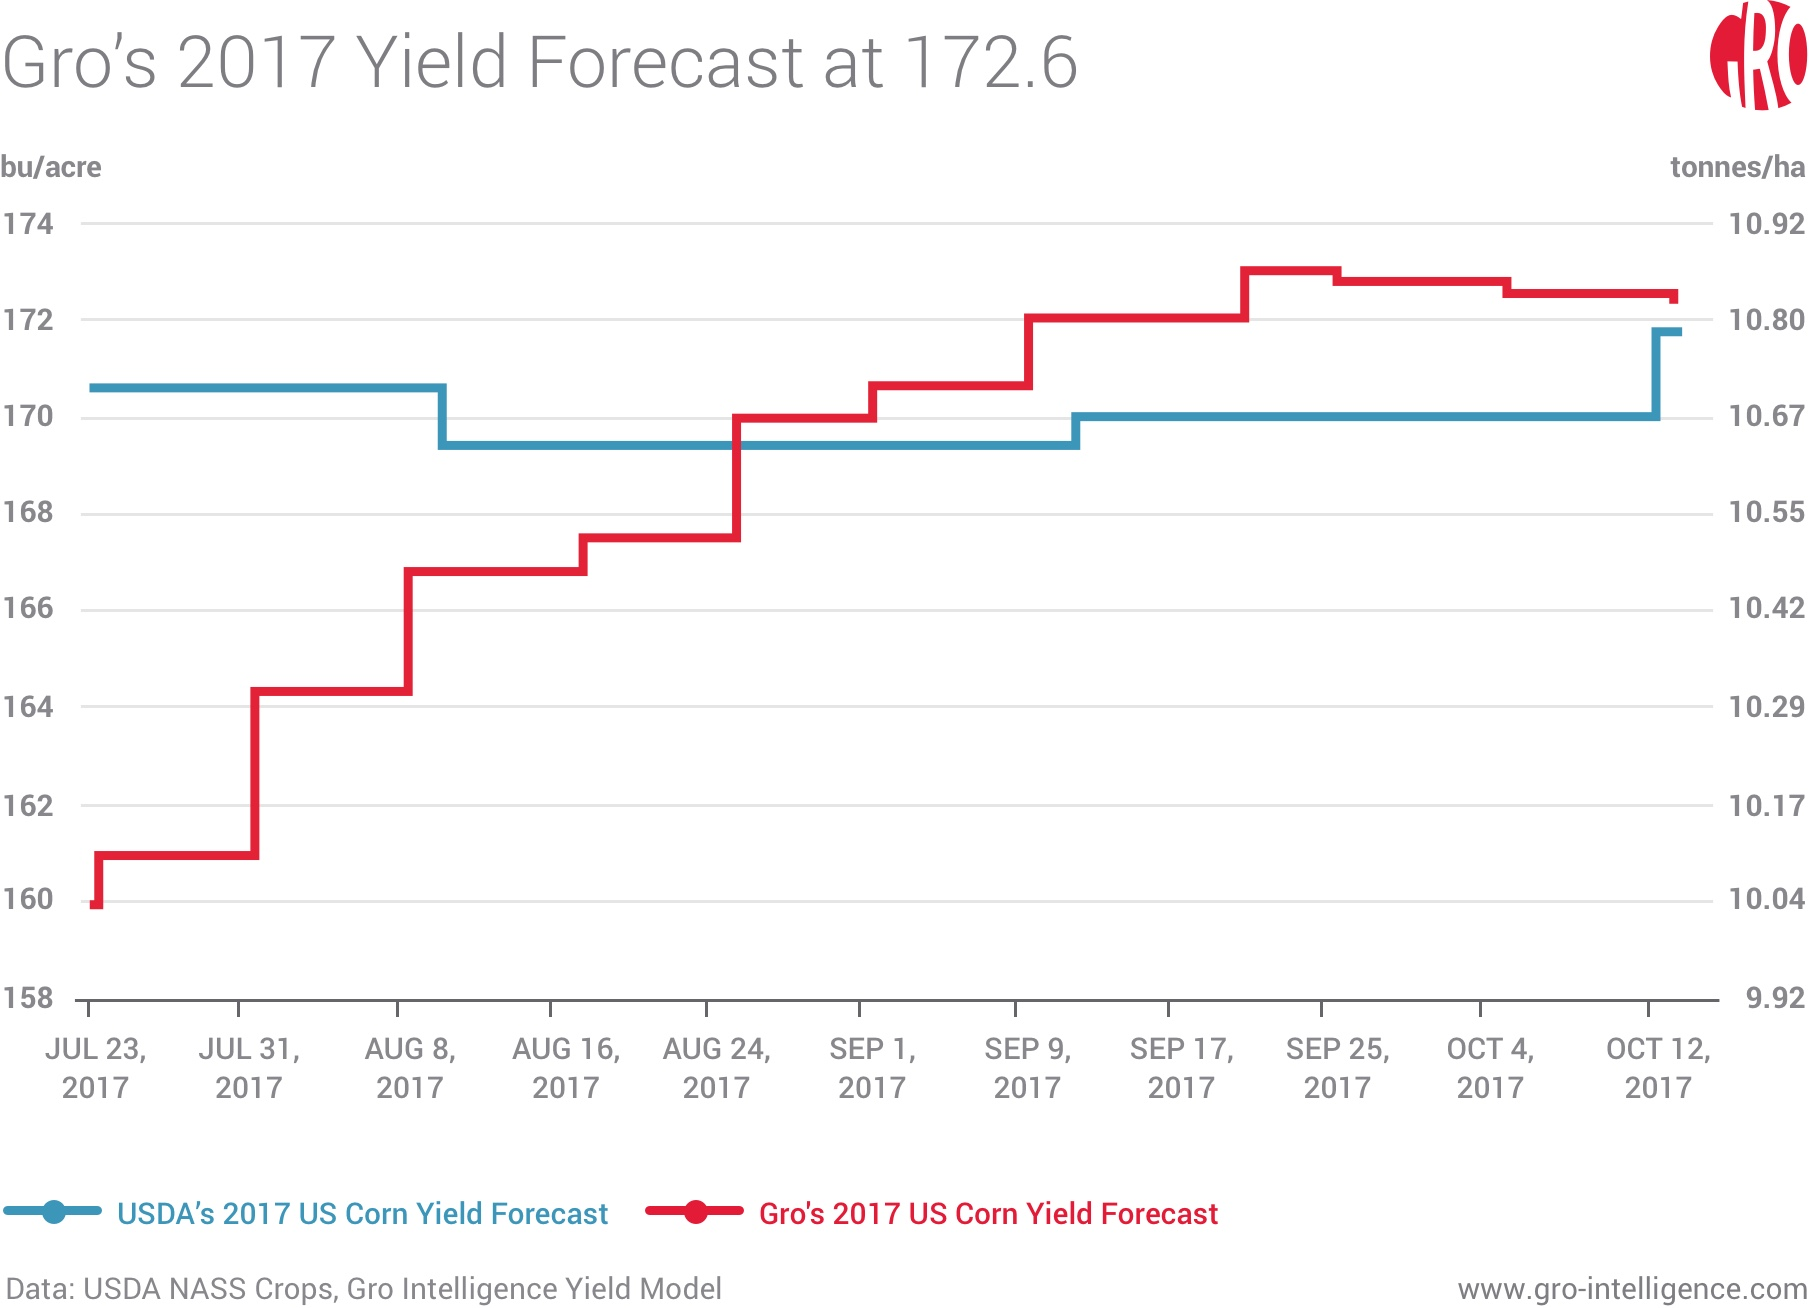 Gro's 2017 Yield Forecast at 172.6